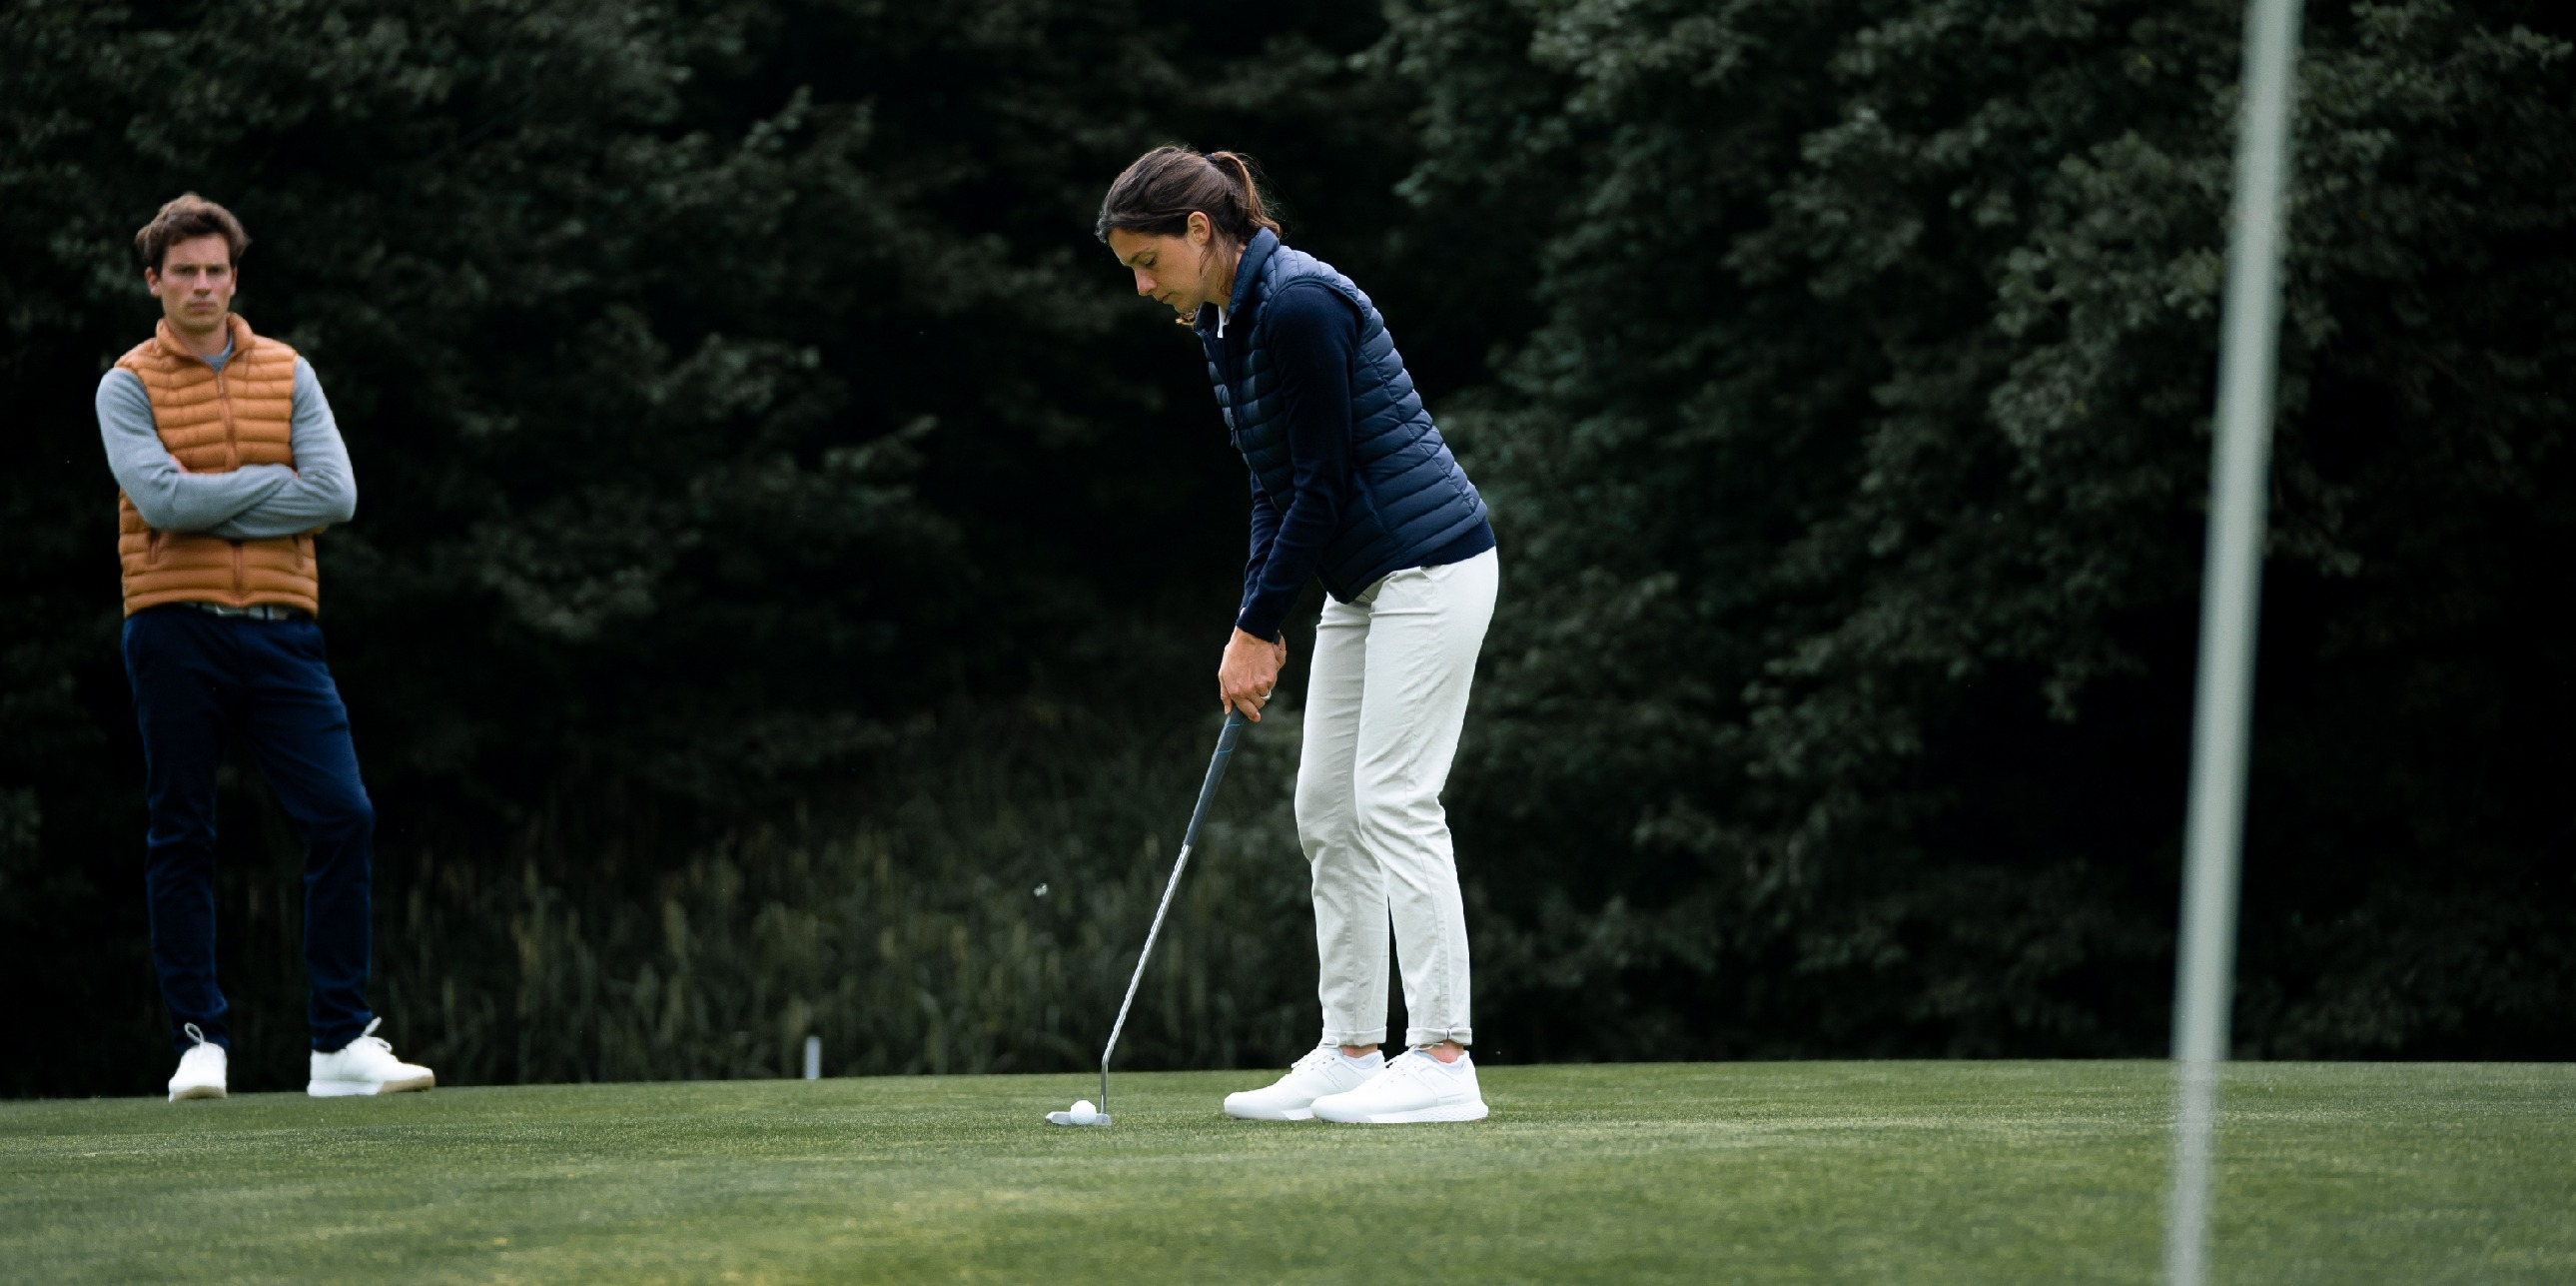 Golf For Beginners: What You Should Know